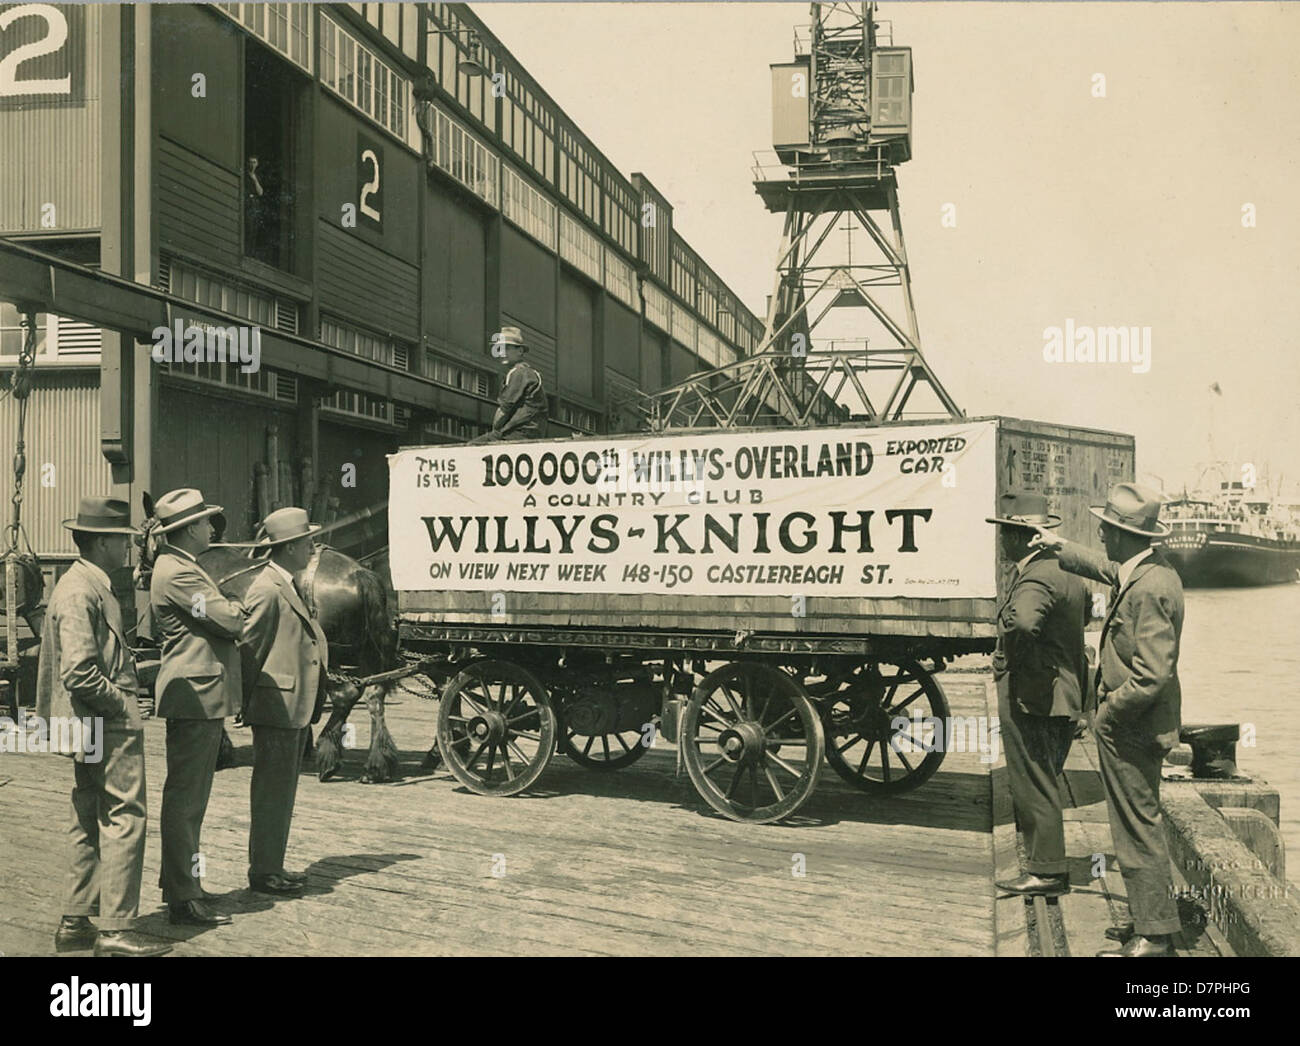 Horse and cart on wharf with crate containing the 100,000th Willys-Overland exported car, 1920 - 1929 - Stock Image